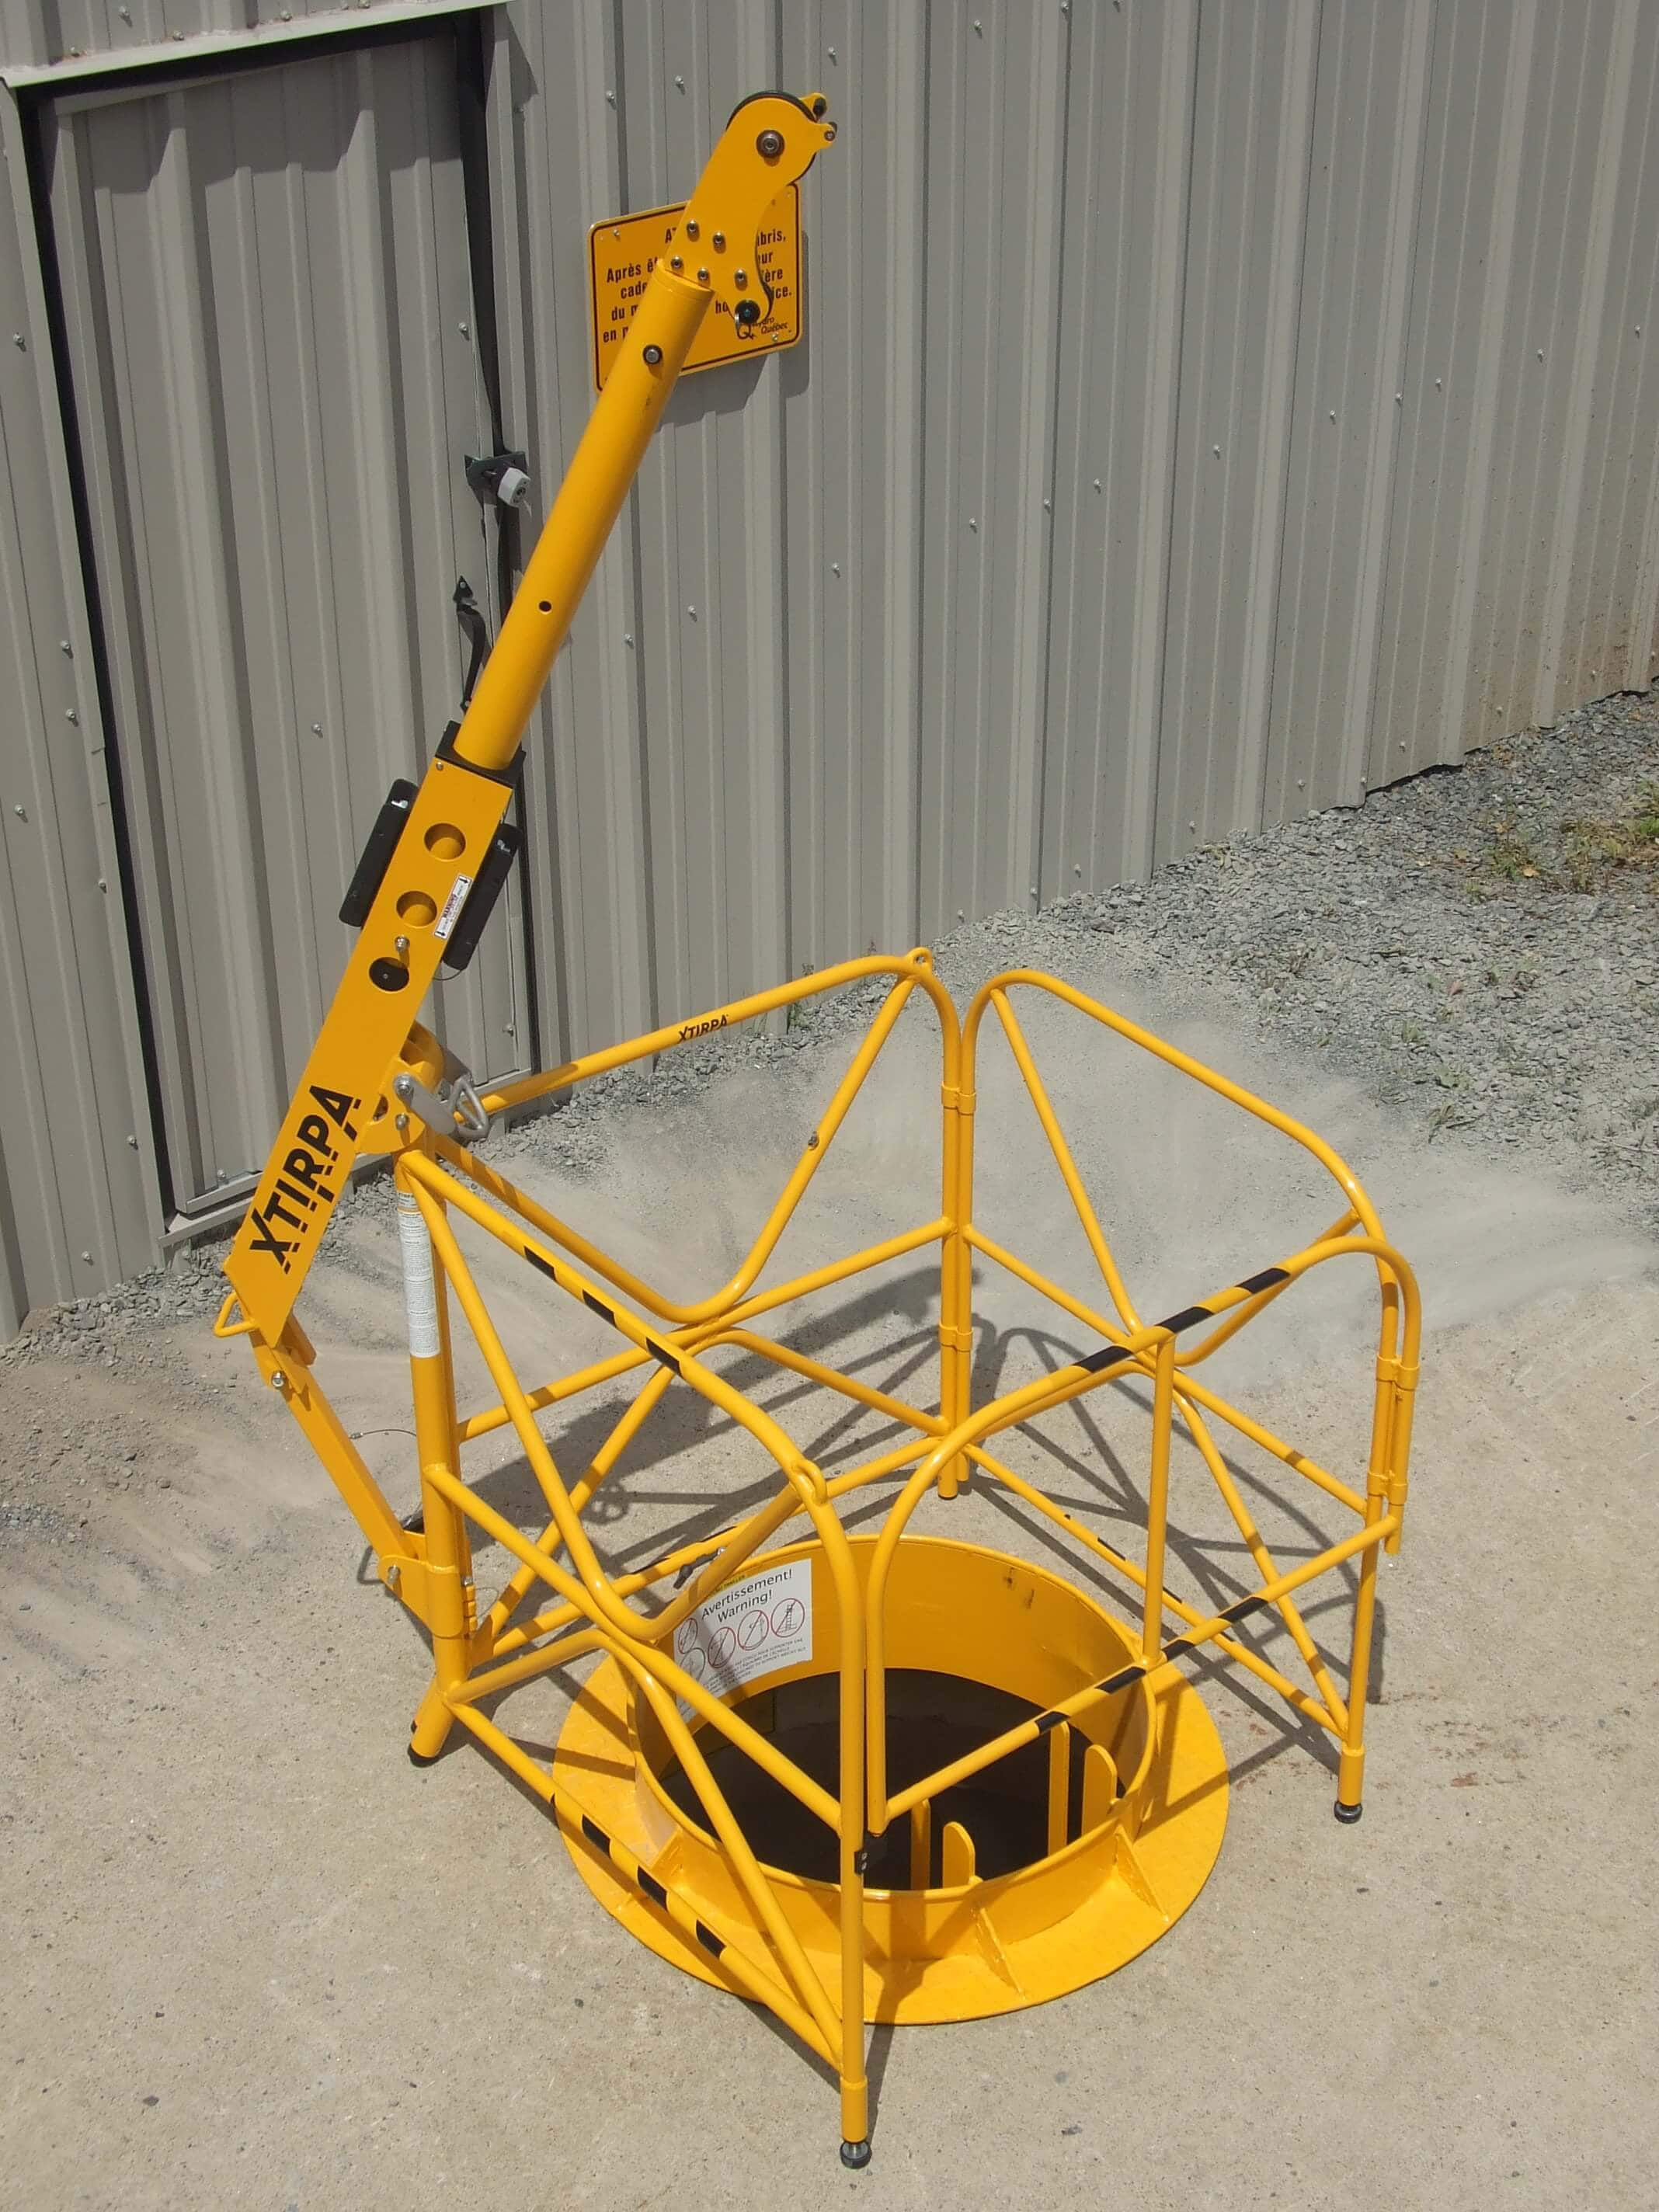 Self Supporting Davit Arm With Manhole Guard System